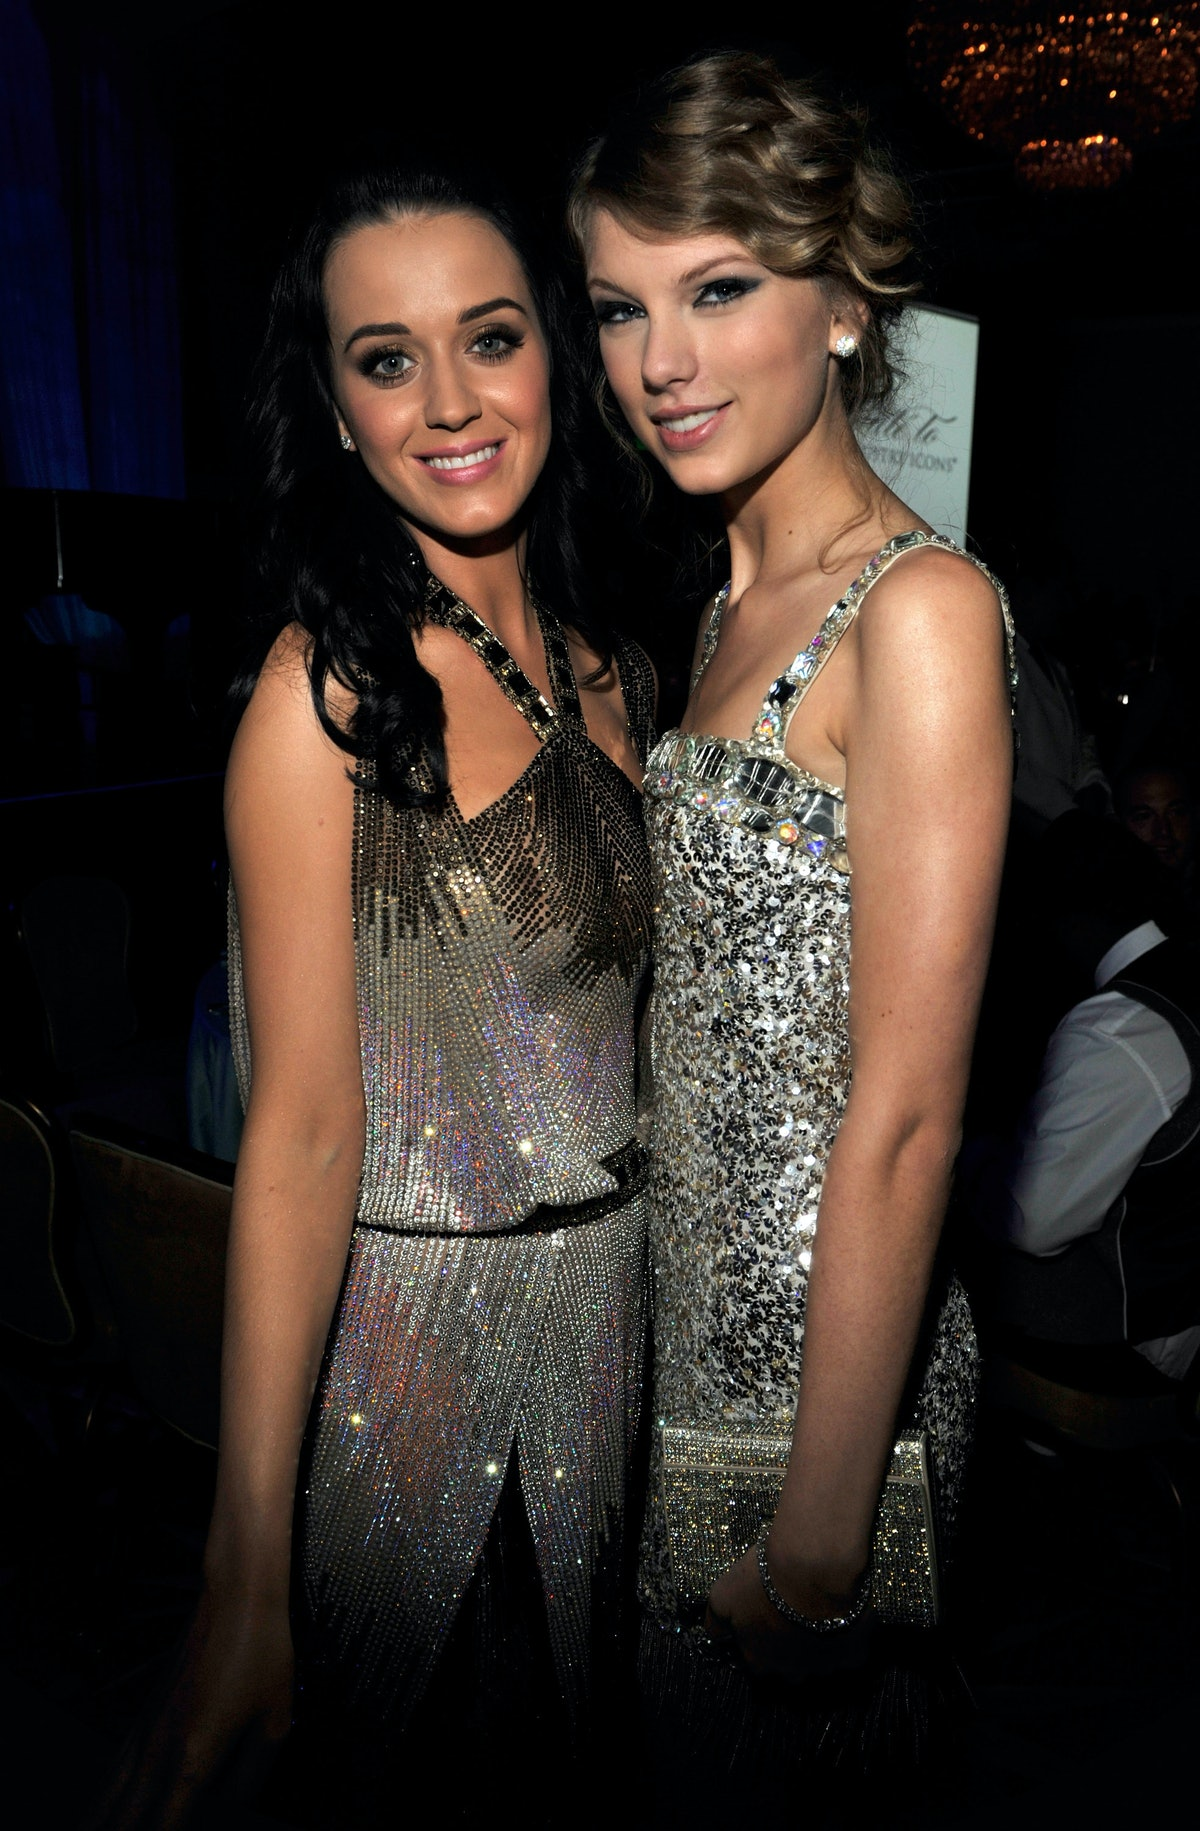 BEVERLY HILLS, CA - JANUARY 30:  Katy Perry and Taylor Swift at the 52nd Annual GRAMMY Awards - Salu...